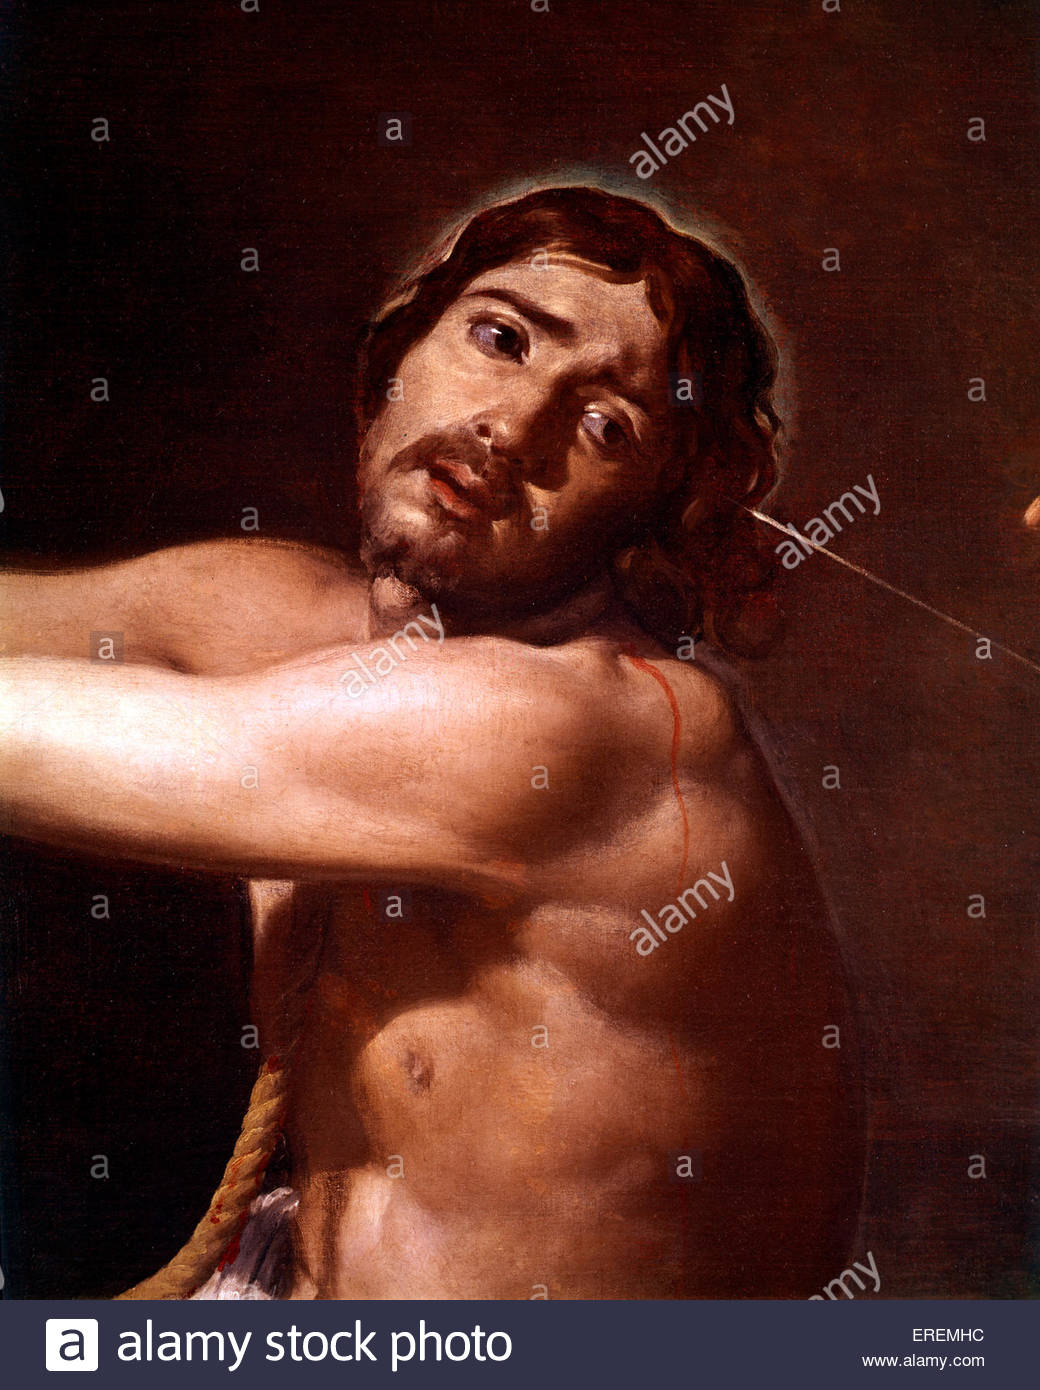 Christ after the Flagellation contemplated by the Christian Soul by Diego Velázquez', probably 1628-29 - Stock Image